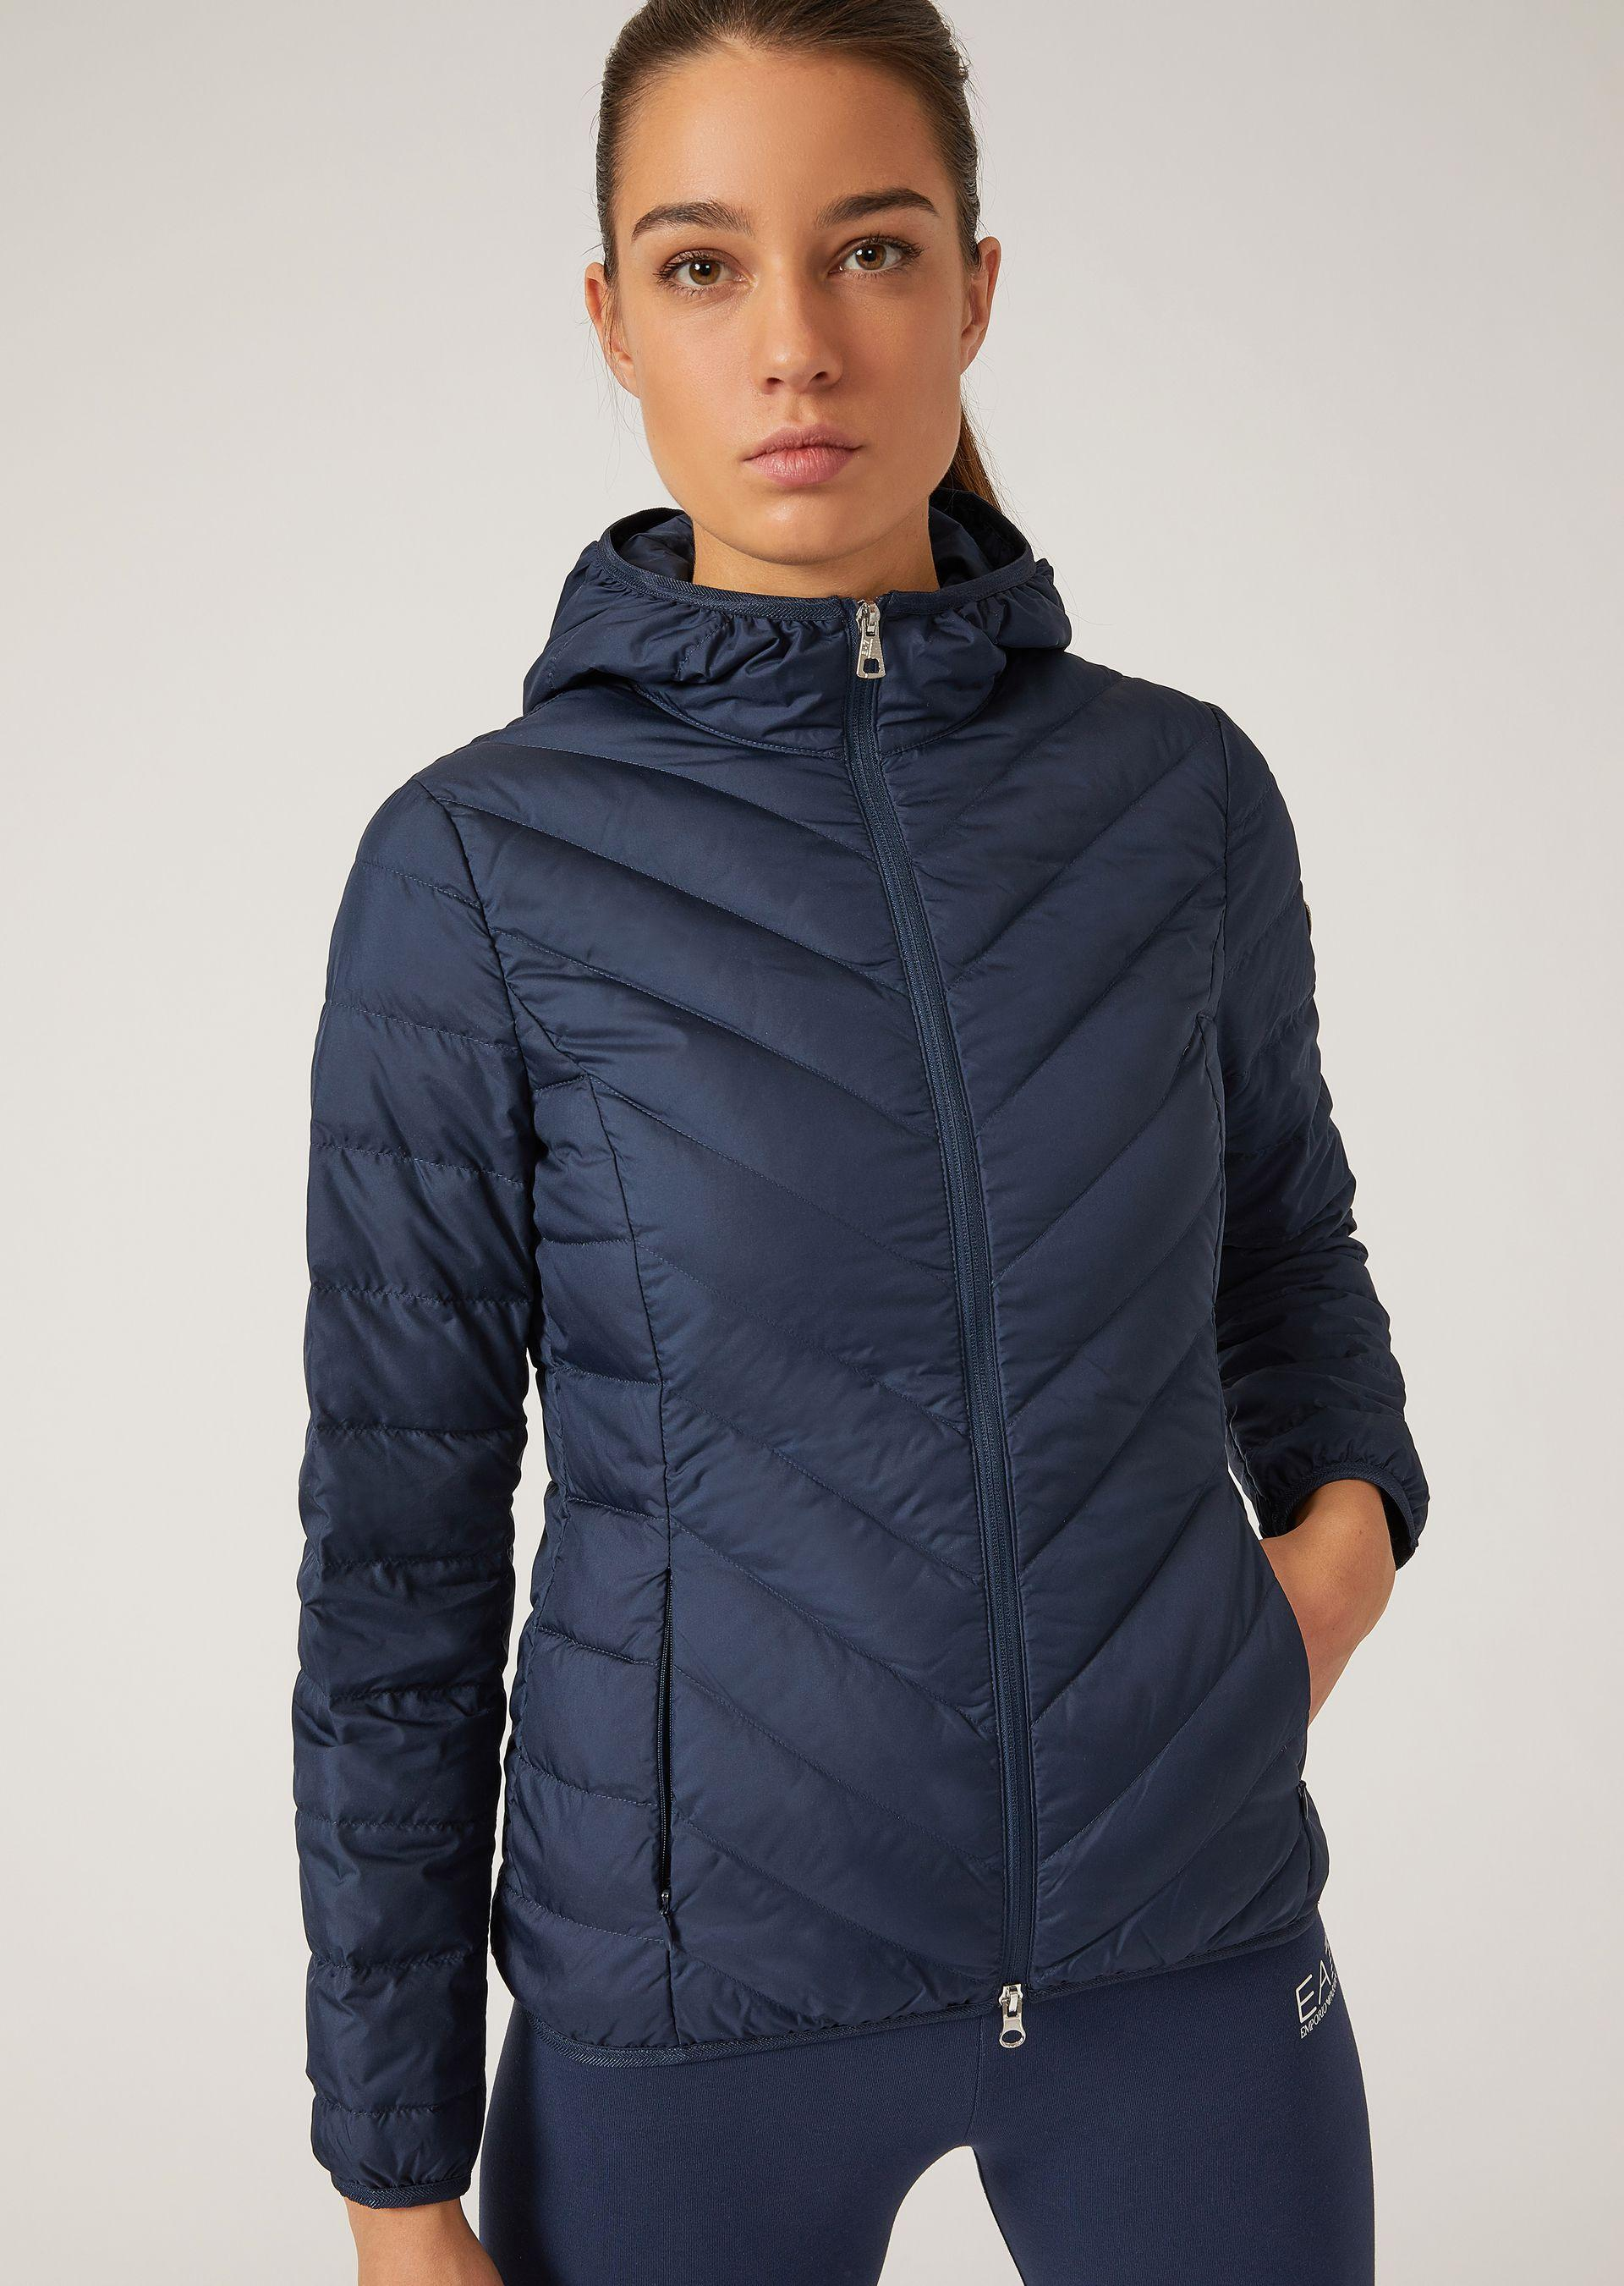 Emporio Armani Down Jackets - Item 41775857 In Navy Blue